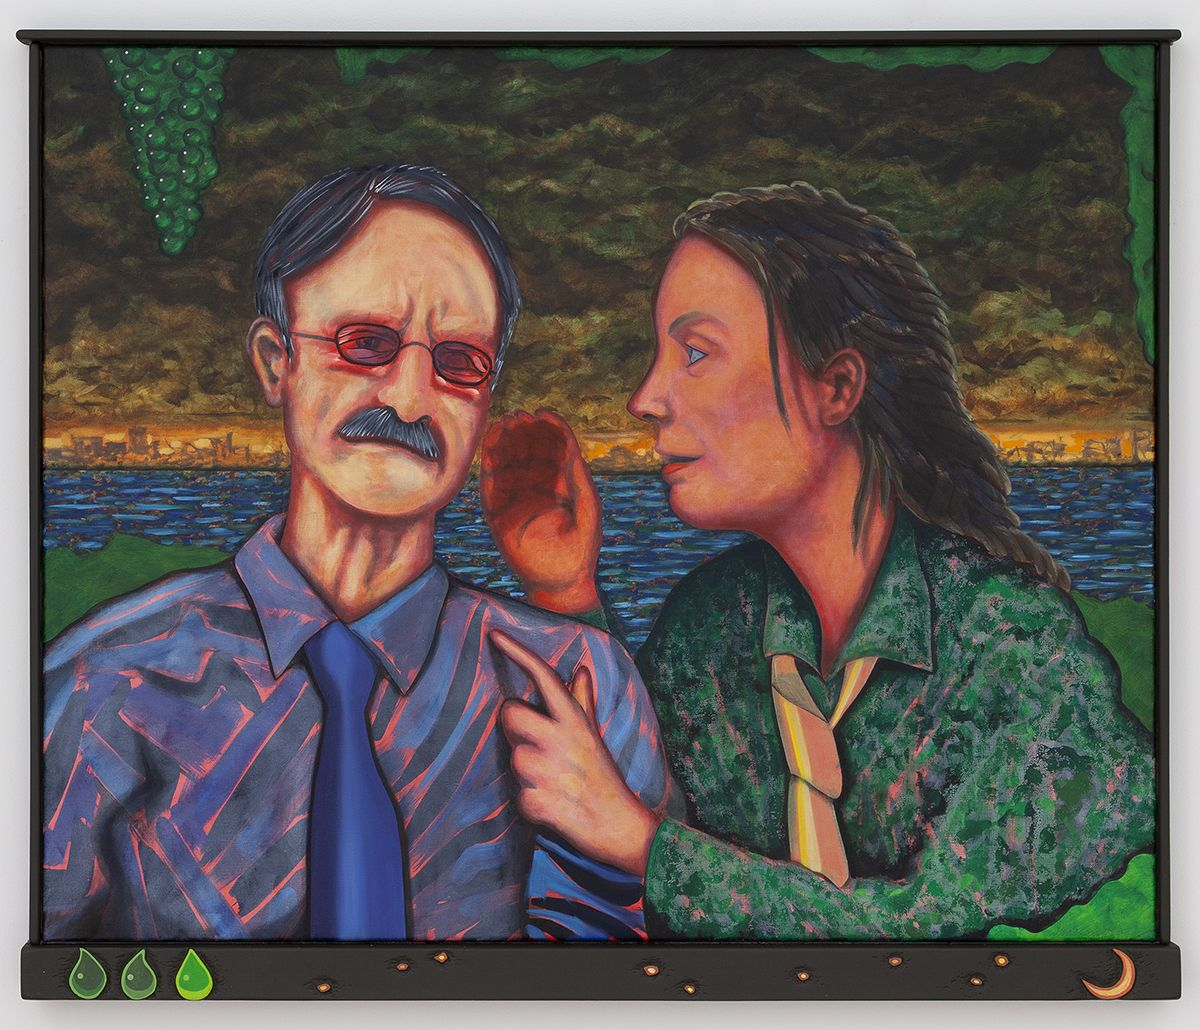 Magnus Anderson Hamlet and Horatio (Uncle and Mom), 2018 Oil on canvas, artist frame/acrylic on lime wood 35 7/8 x 42 7/8 x 2 inches (91 x 109 x 5 cm)